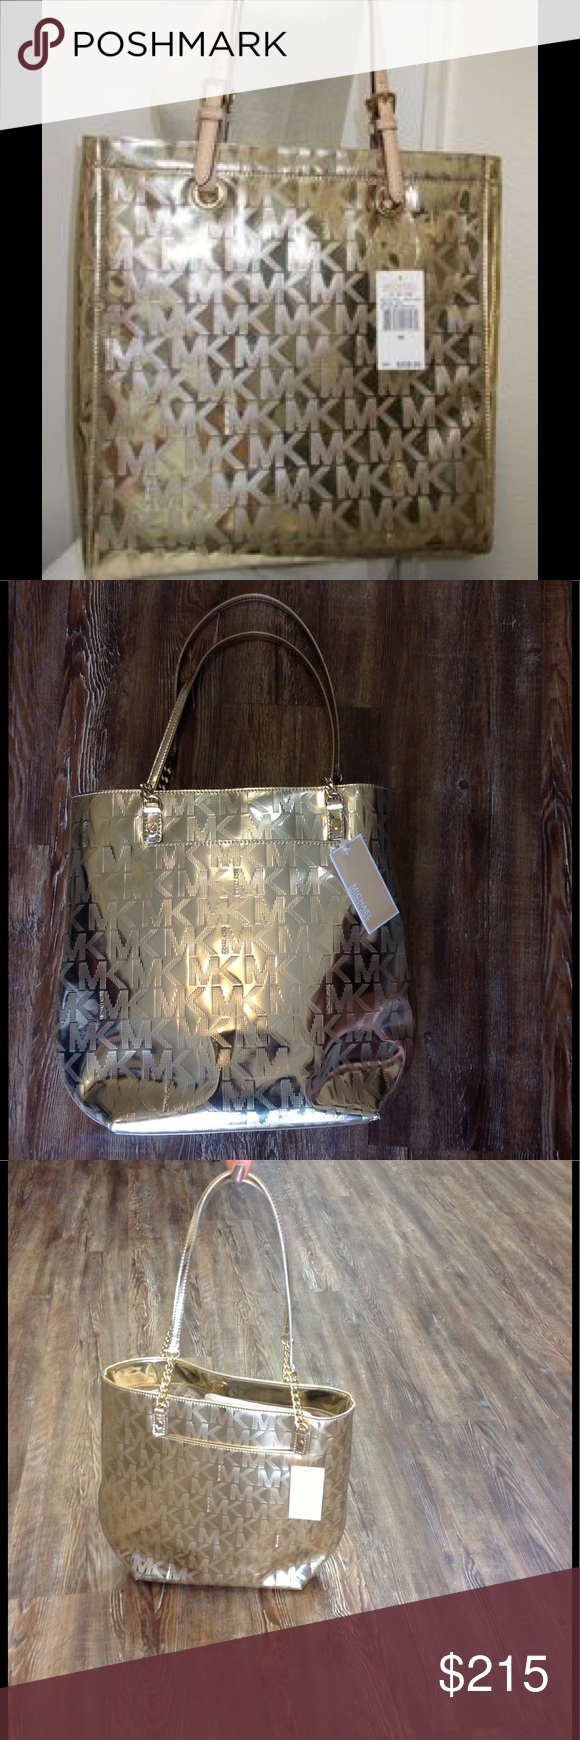 """Michael Kors Jet Set Chain Gold Metallic Purse NWT This bag screams designer!! Perfectly trendy for everyday carry!!  ****COVER PHOTO IS FOR EXAMPLE!! Purse has half chain straps not full leather straps!! Please refer to pictures!****           Dimensions: 12.75""""x14.5""""     Strap Length: 11"""" Michael Kors Bags Totes"""